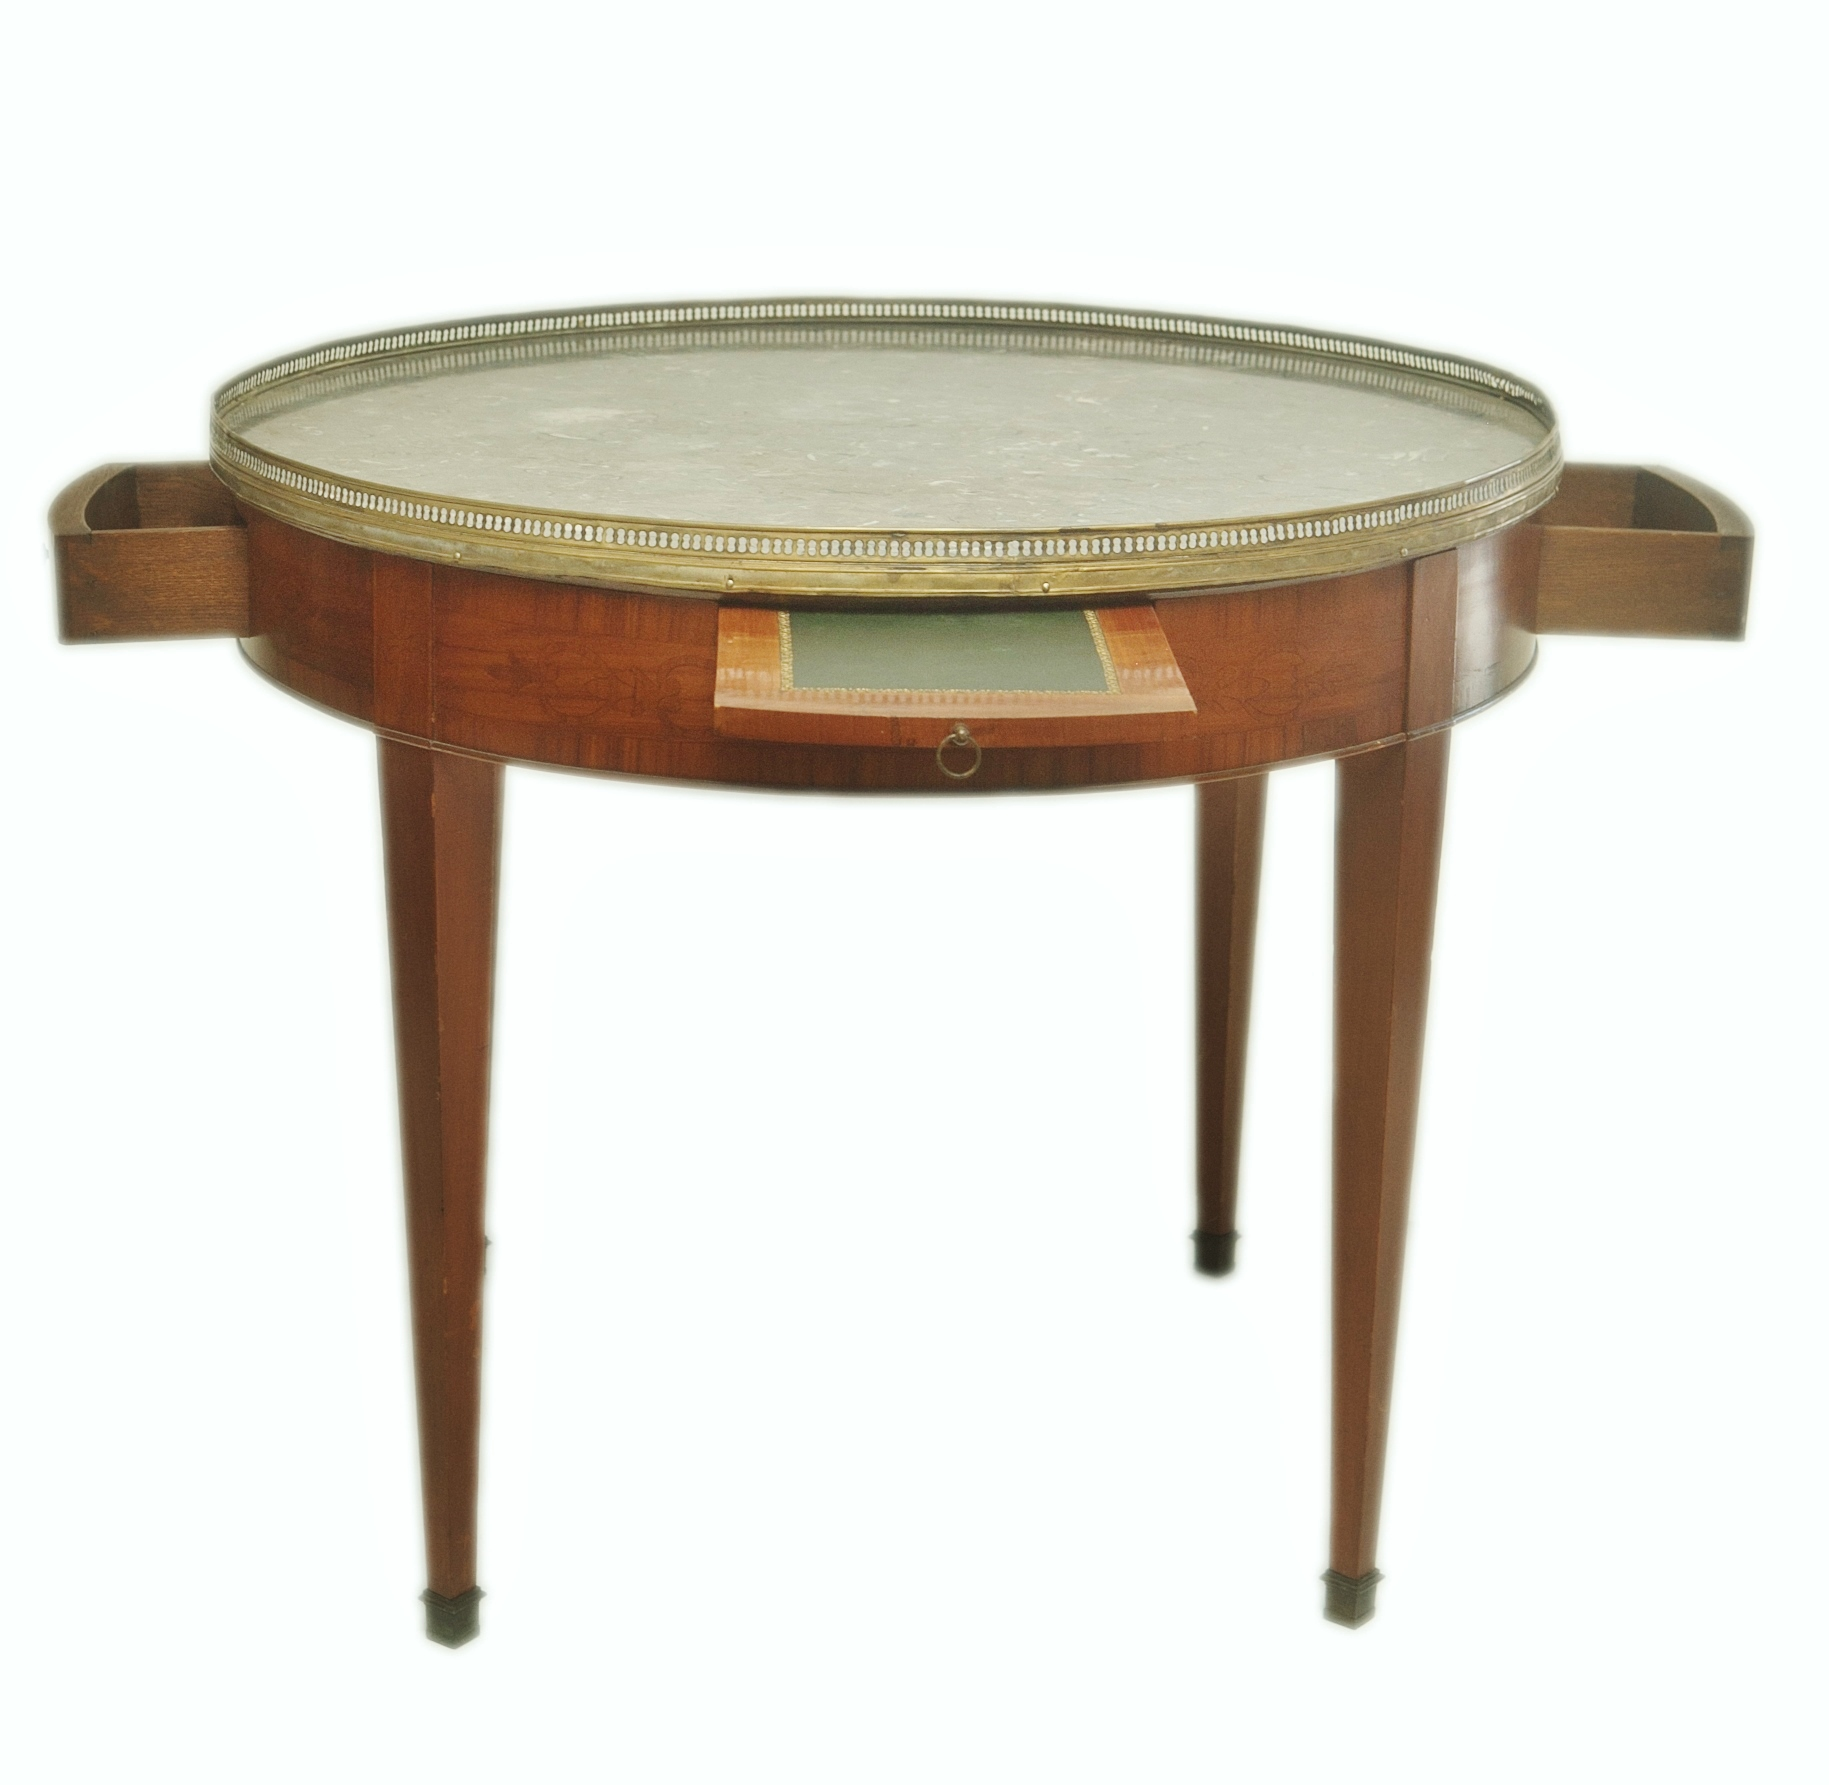 Large Round French Gueridon Table Chairish : large round french gueridon table 1767aspectfitampwidth640ampheight640 from www.chairish.com size 640 x 640 jpeg 25kB